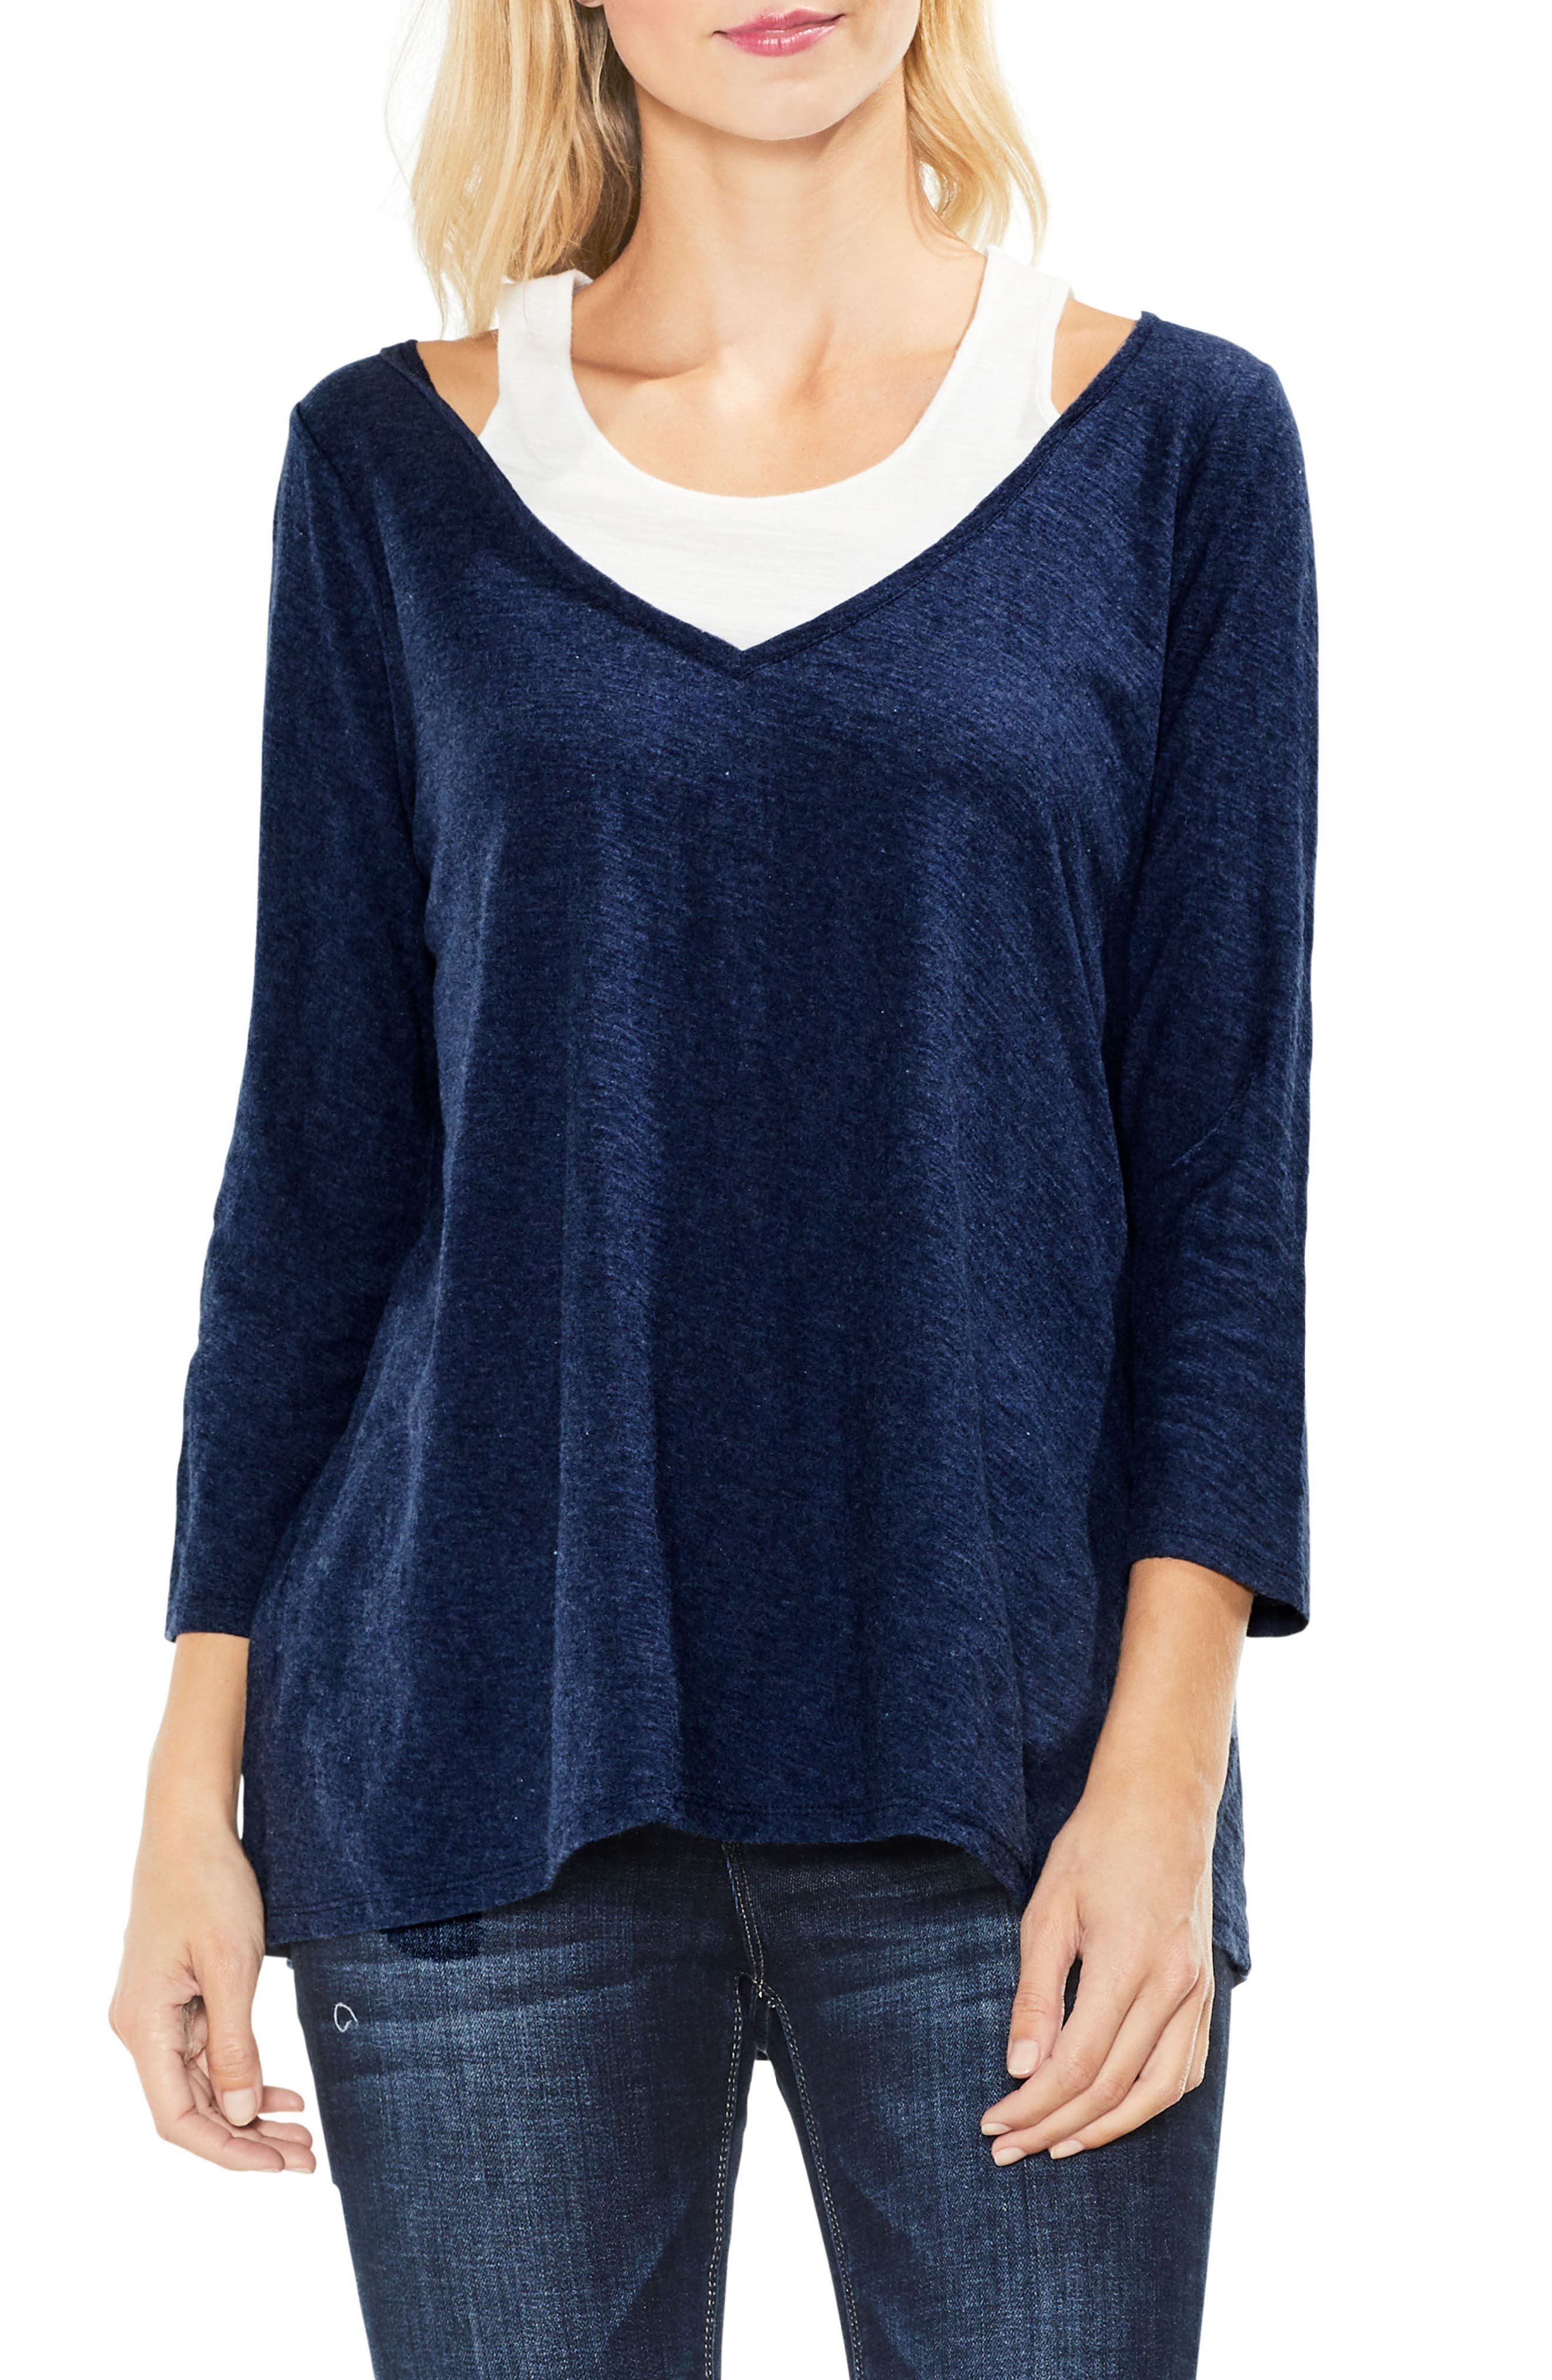 Two by Vince Camuto Layered Top,                             Main thumbnail 1, color,                             Indigo Night